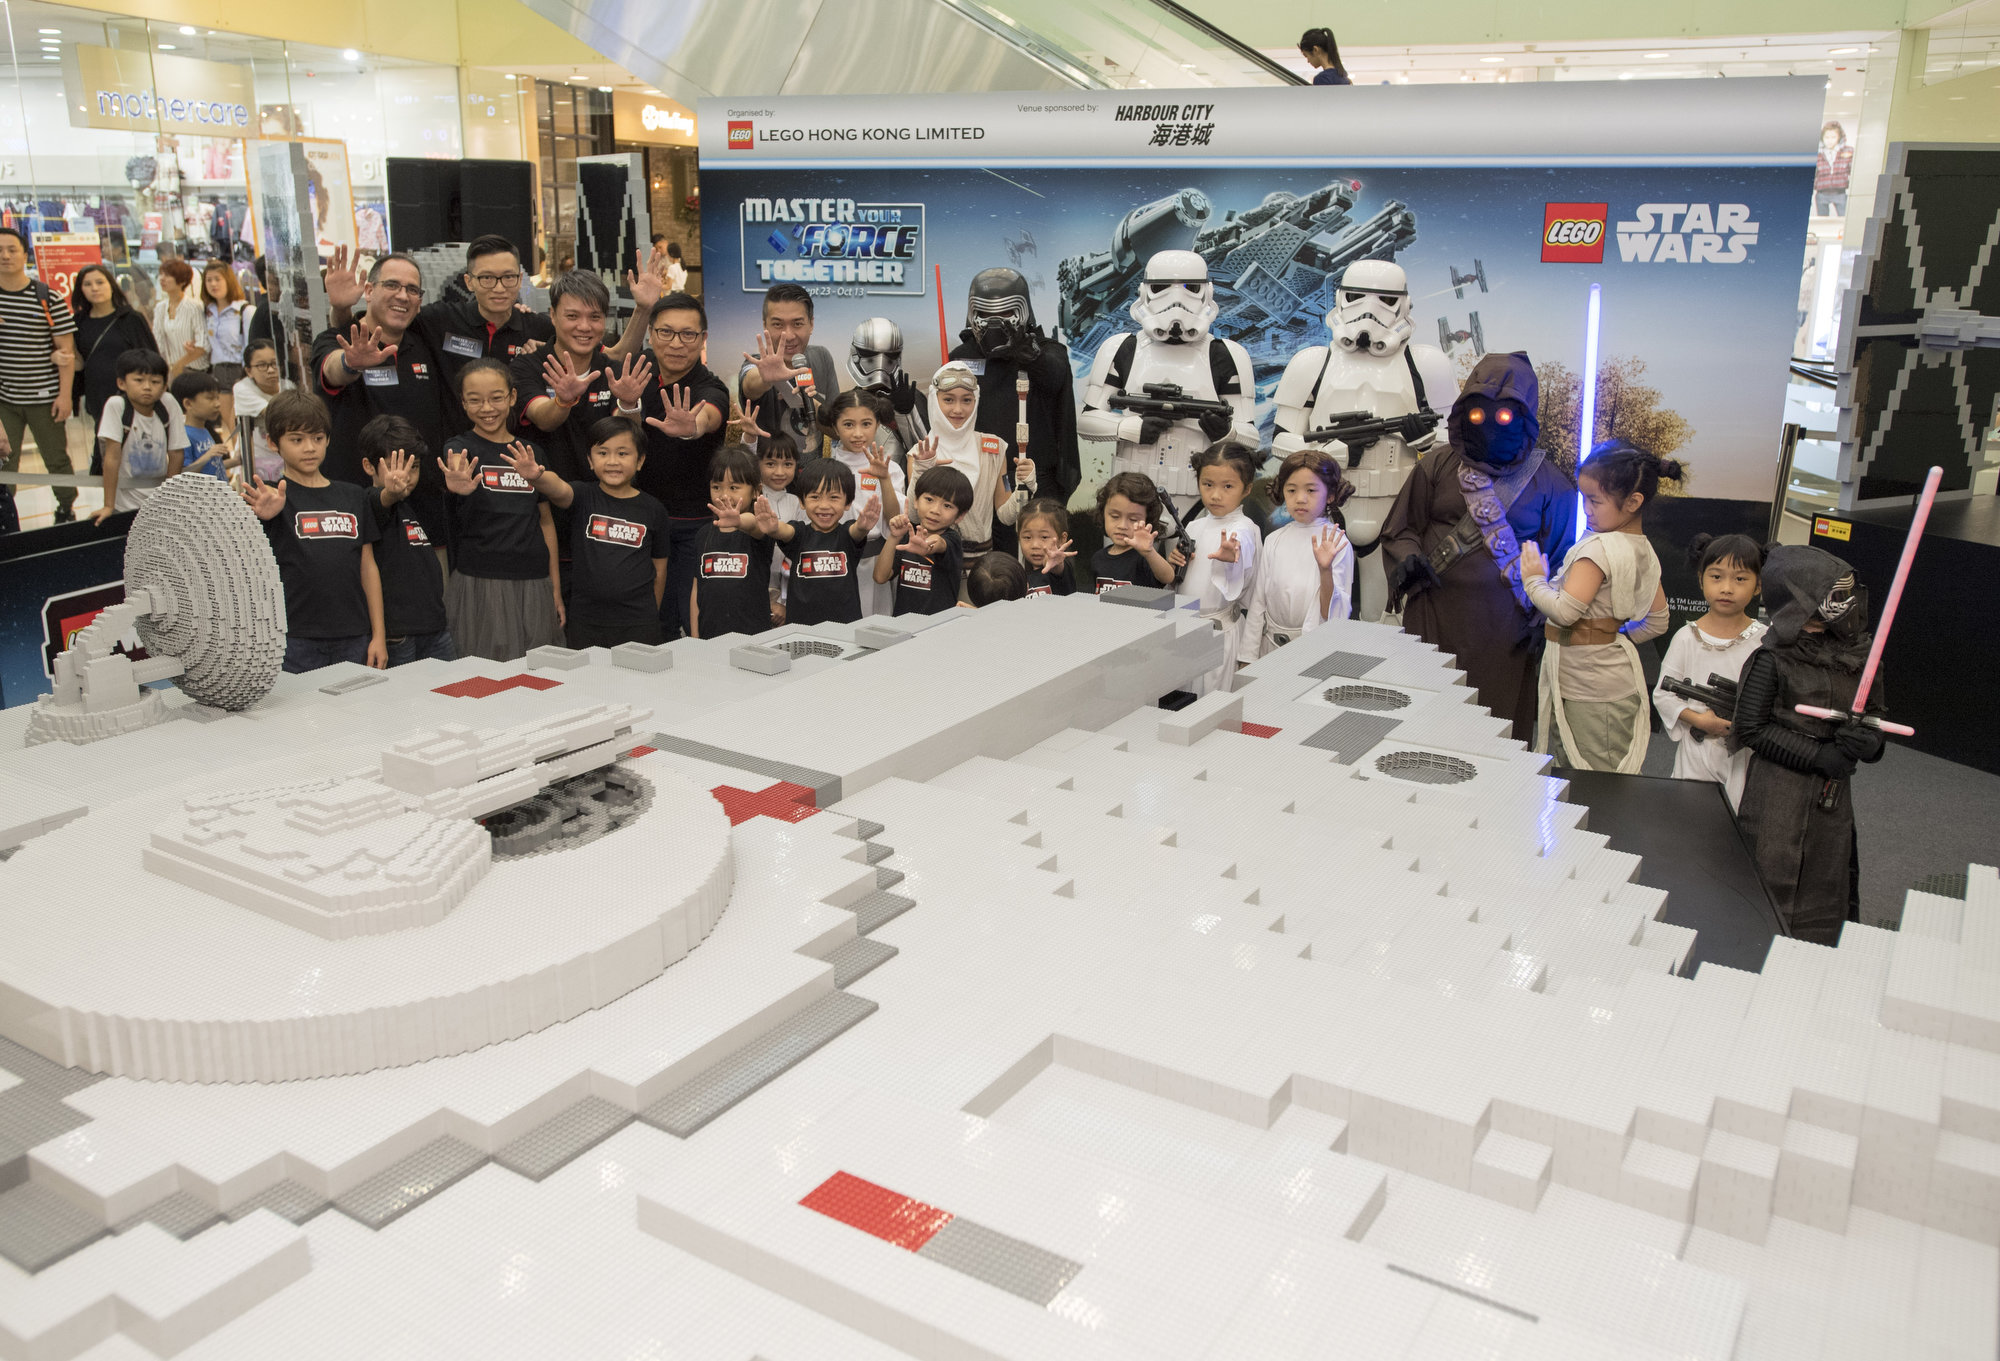 lego-star-wars_master-your-force-together_build-millennium-falcon_toppin